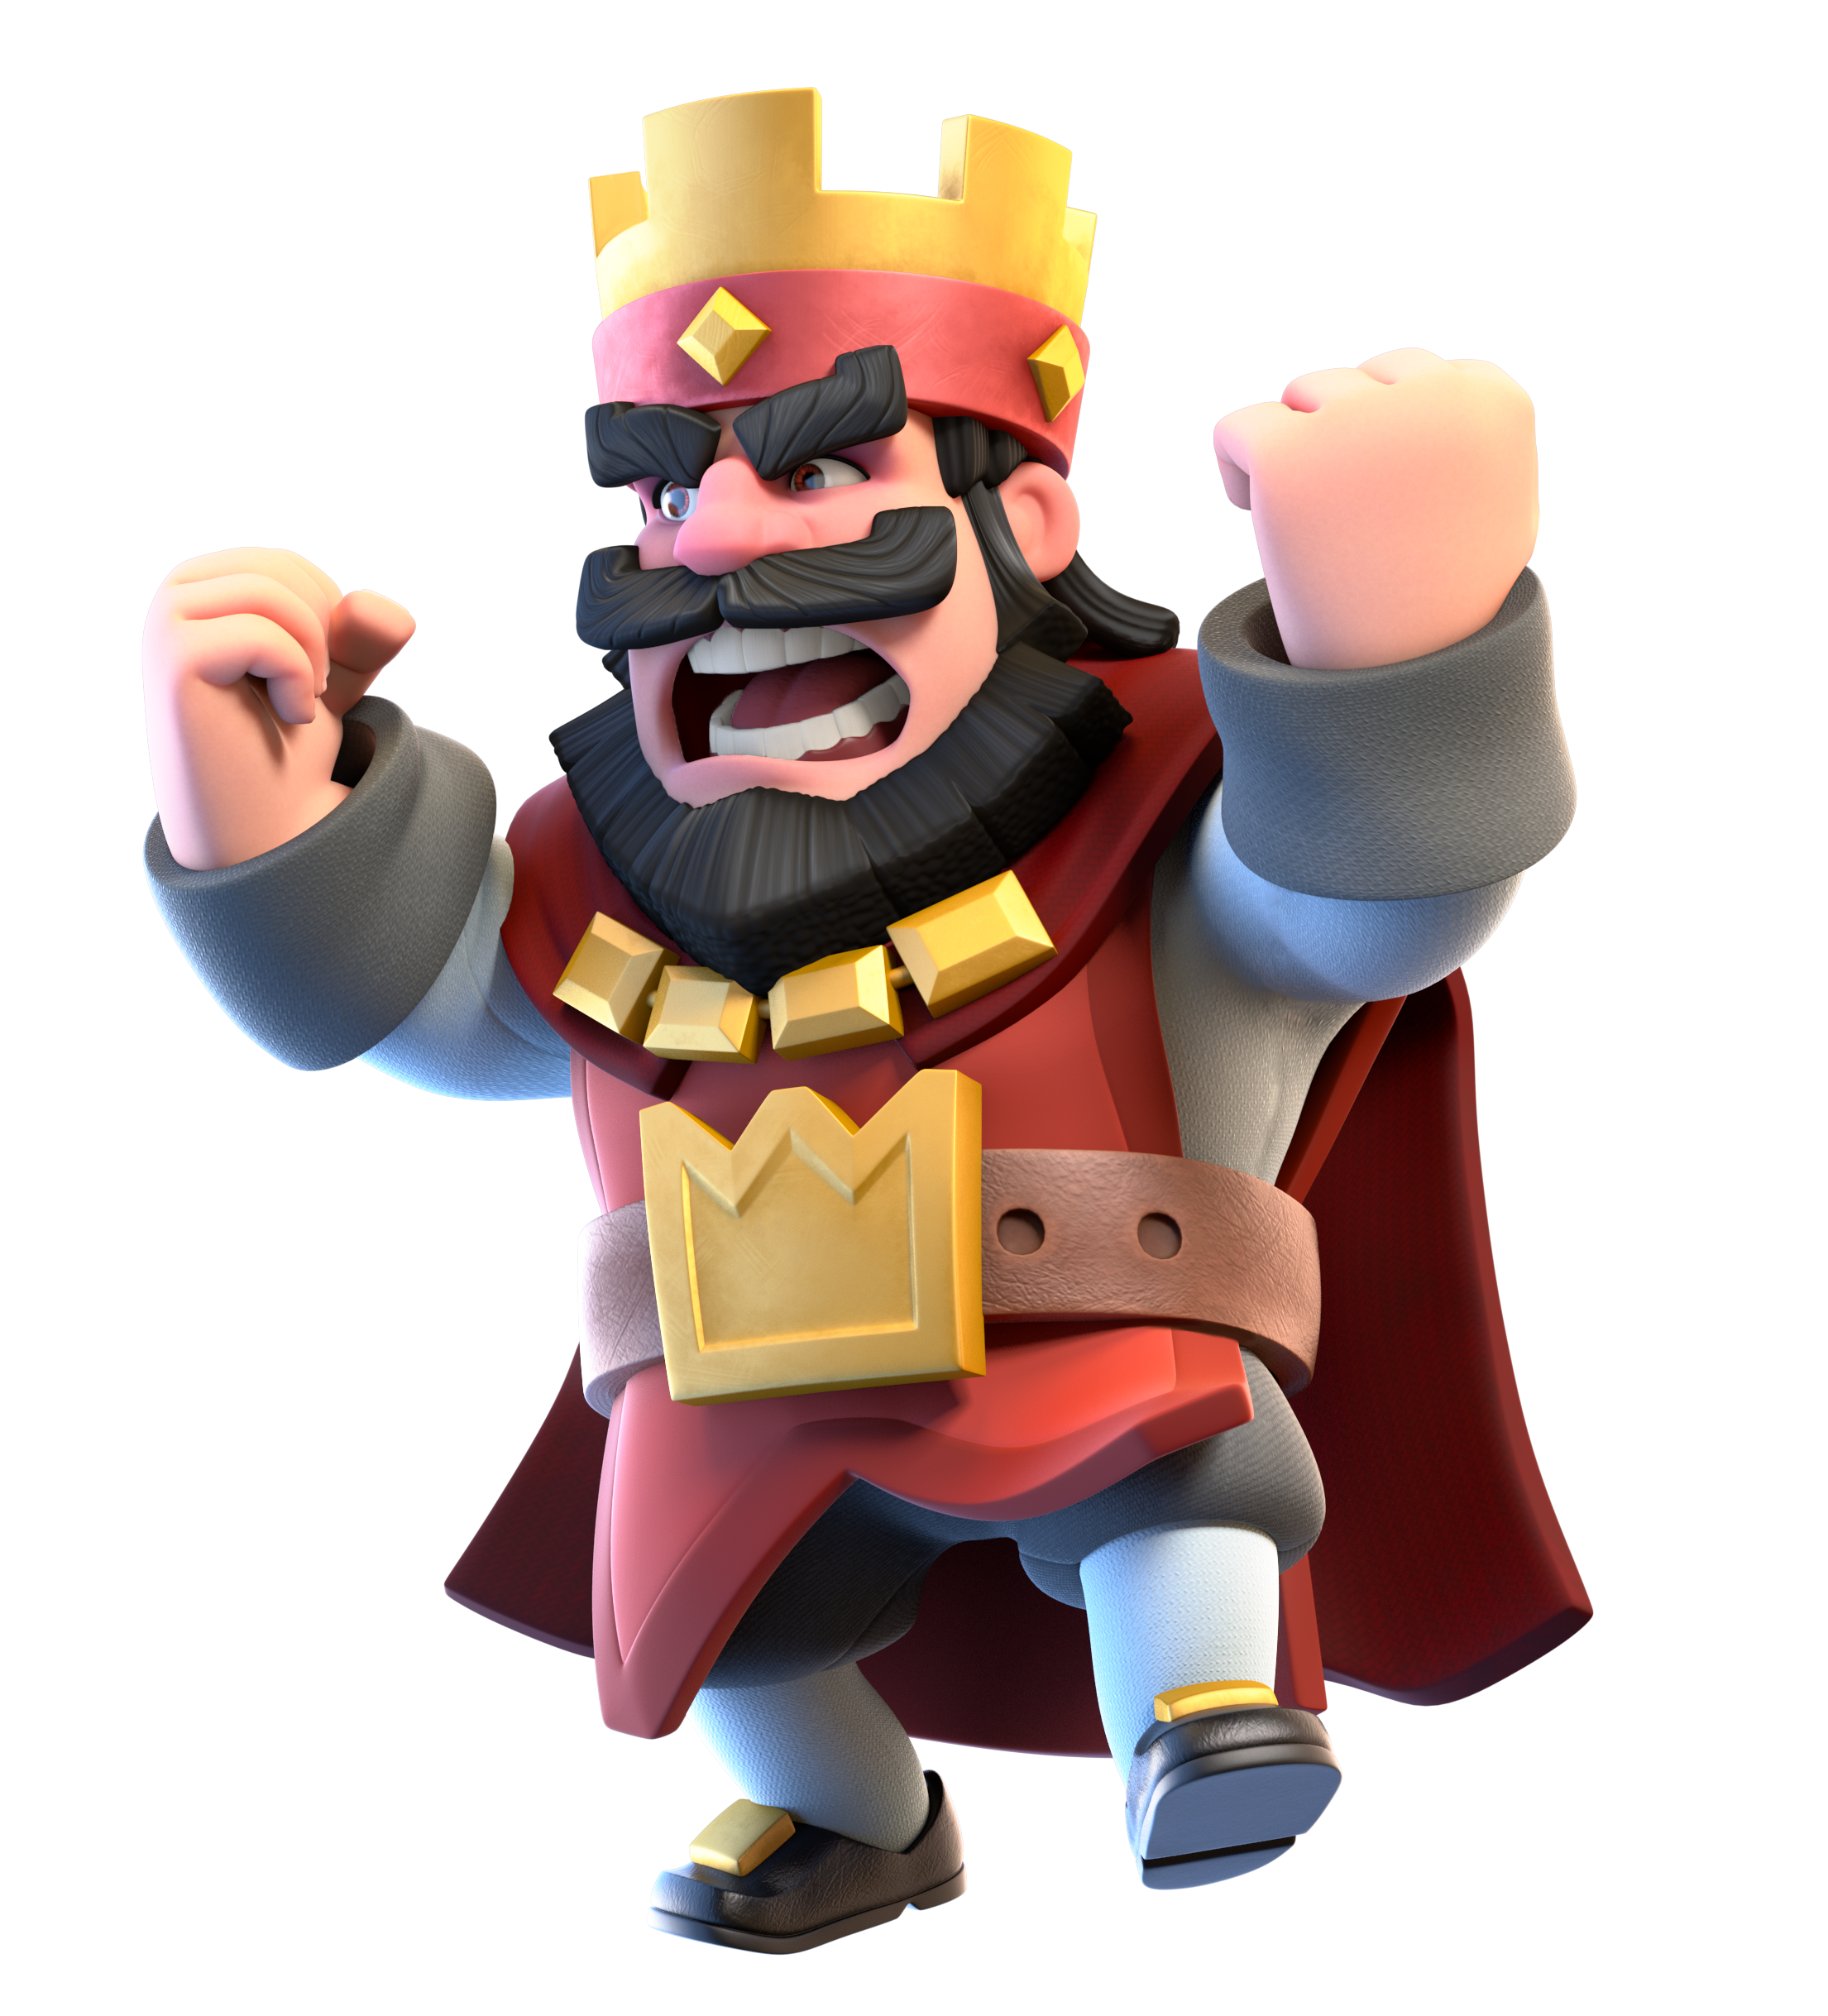 Red King Angry Png 2210 2437 Clash Royale Deck Clash Royale Party Clash Royale Personajes